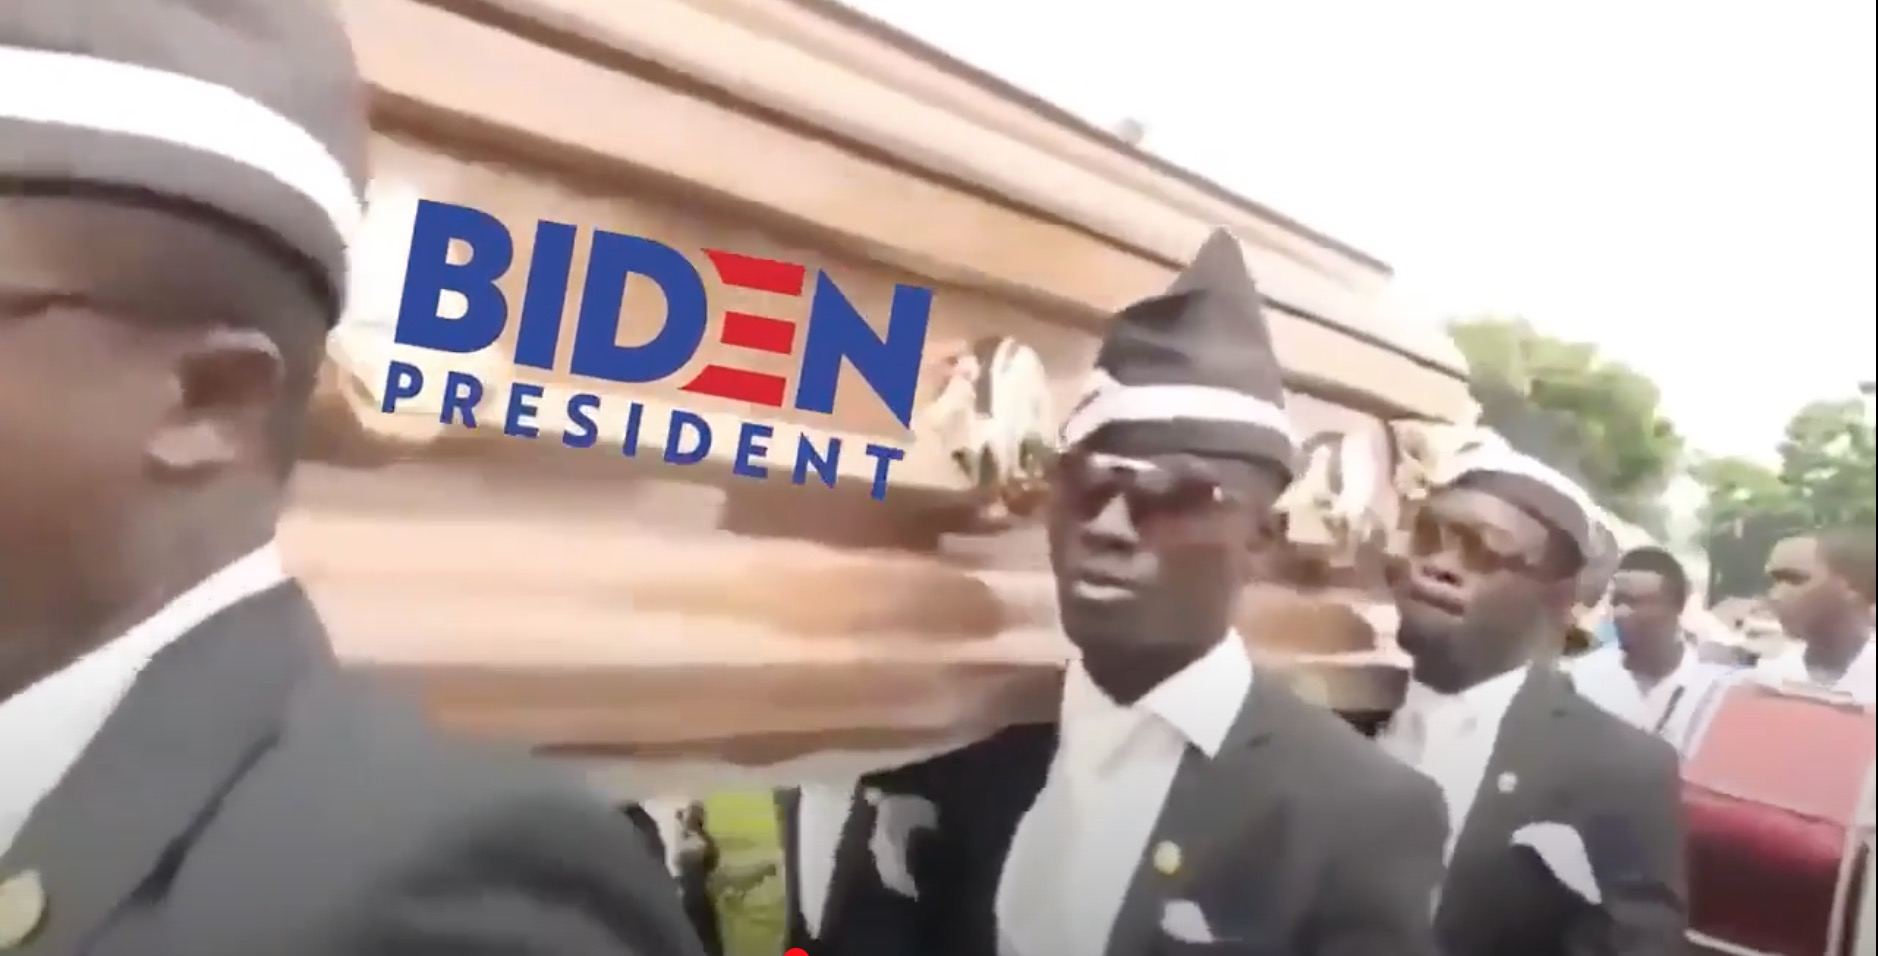 Trump Shares Biden Campaign Funeral Video